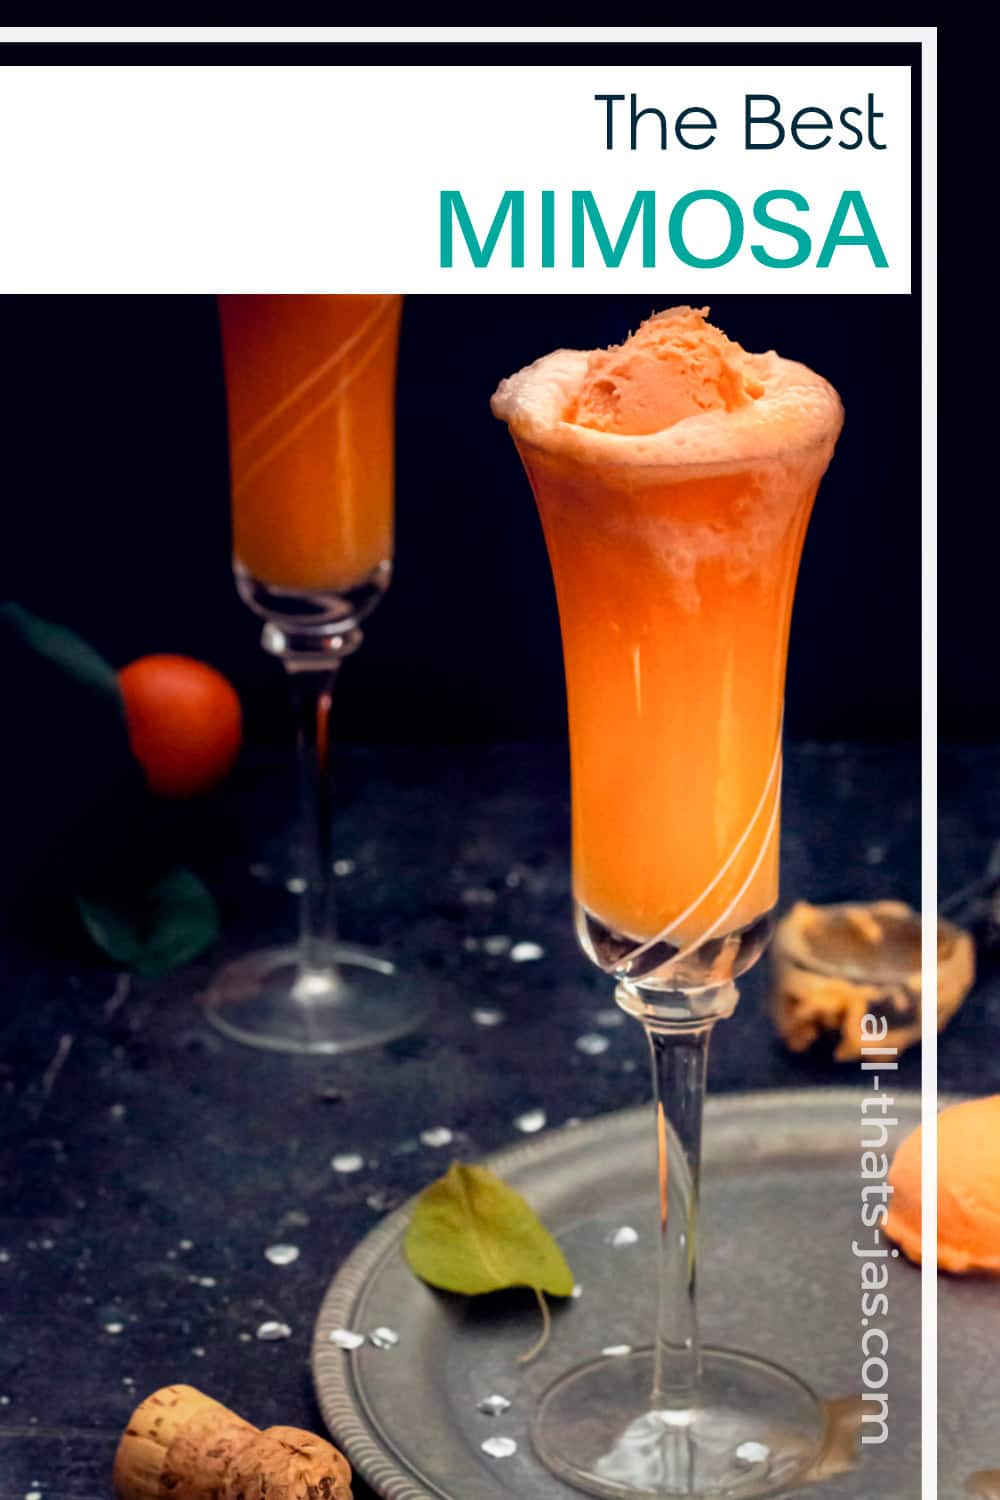 Champagne orange sherbet mimosa in a glass with text overlay.